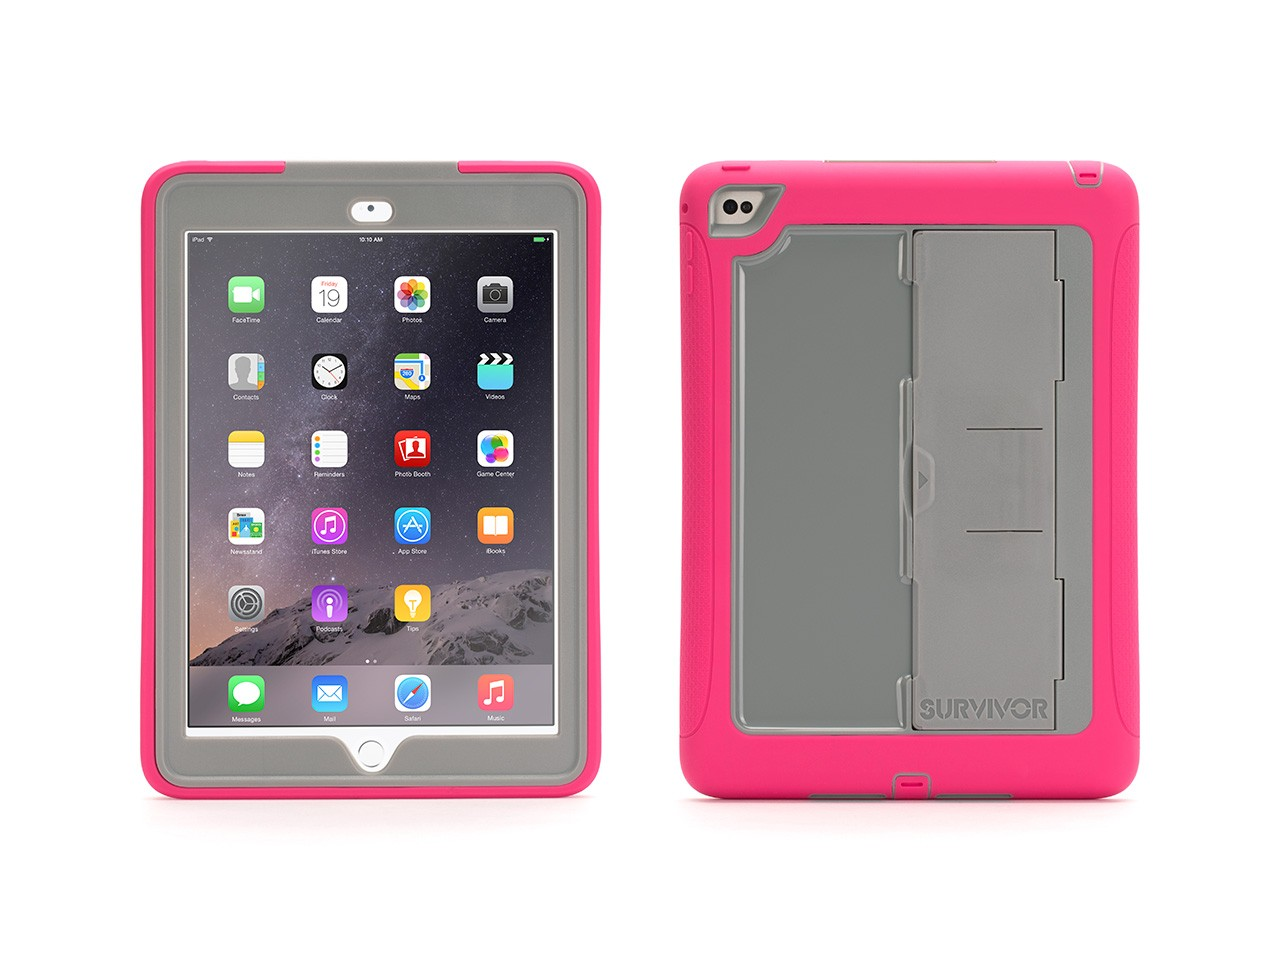 Griffin Ipad Air 2 Rugged Case Survivor Slim Impact Resistant Protection Slimmed Down For Your Com